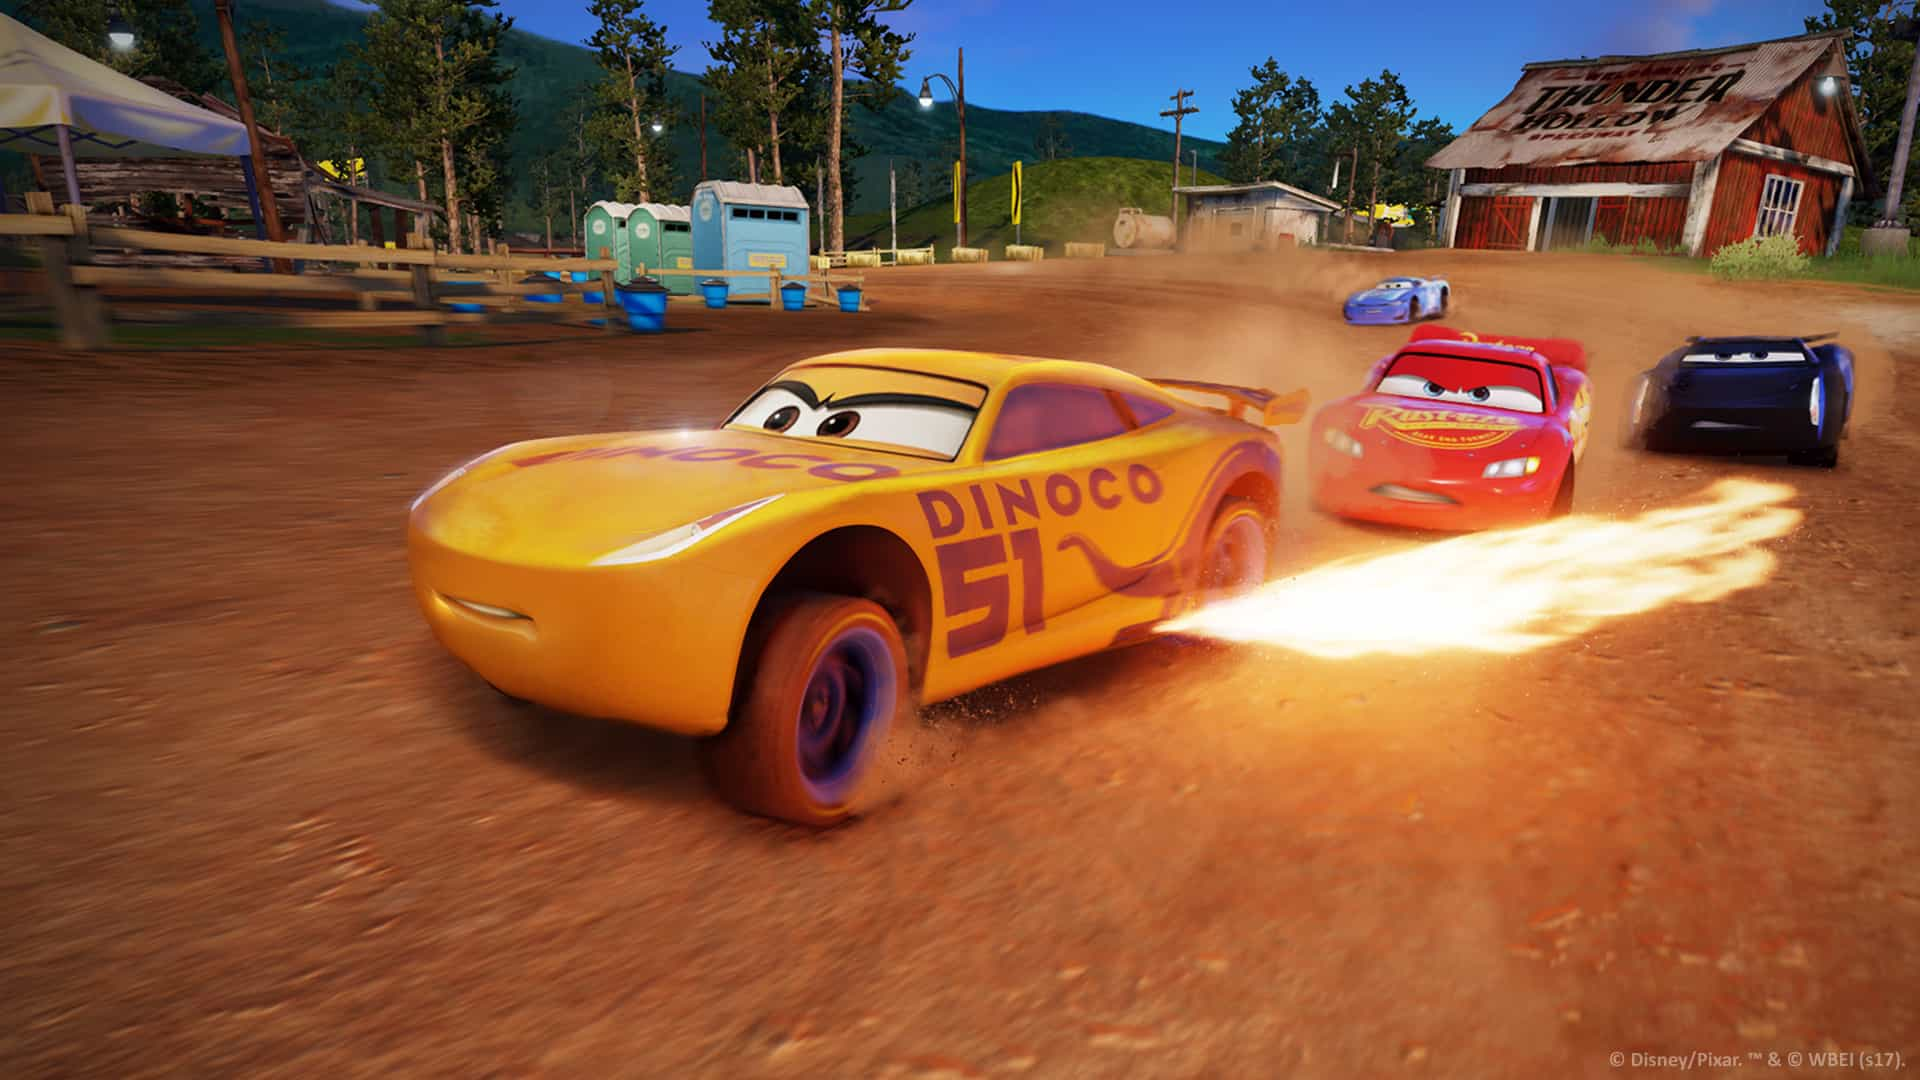 Cars 3 Driven To Win Out Now In The Uk Diskingdom Com Disney Marvel Star Wars Merchandise News